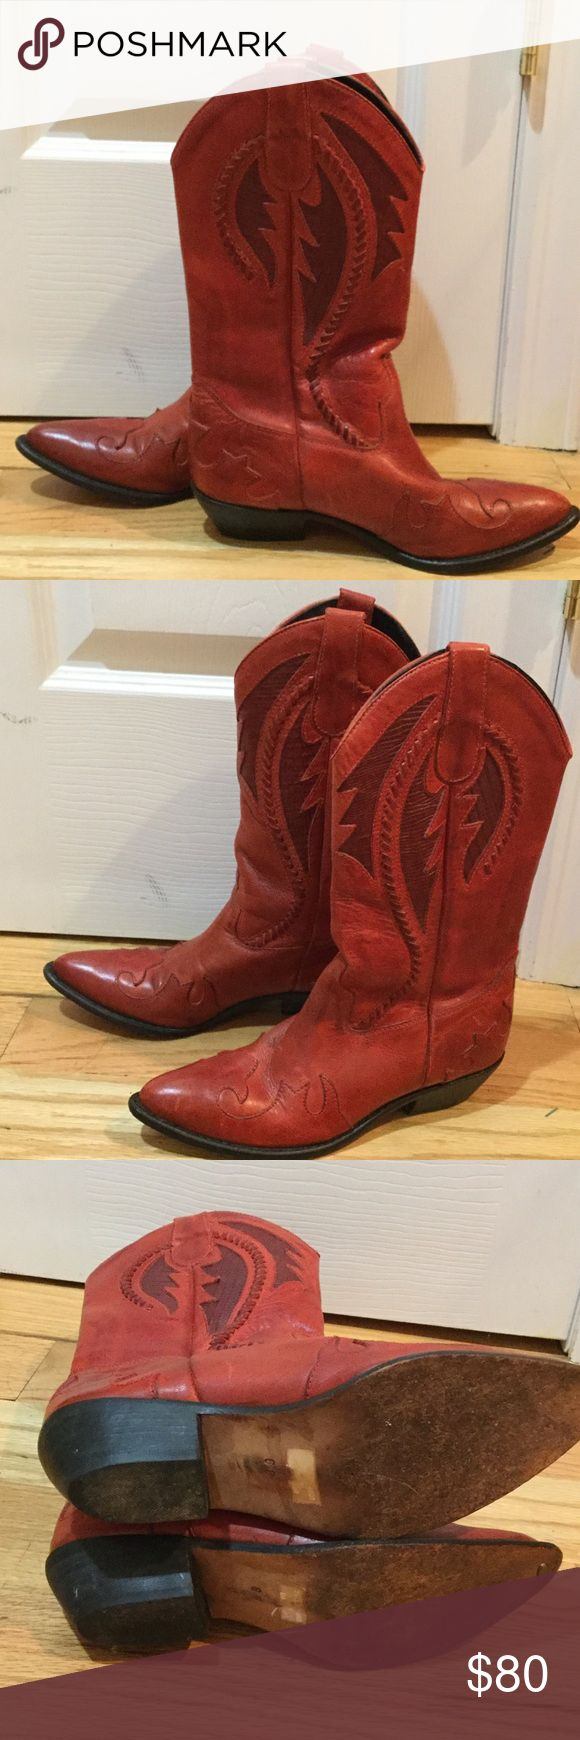 Wild Pair Red Leather Boots Great condition Red Leather Boots by Wild Pair. Beautiful deep red color.  Stitching detail on the boot is in mint condition.  Classic cowboy boot for any cowgirl. Wild Pair Shoes Heeled Boots